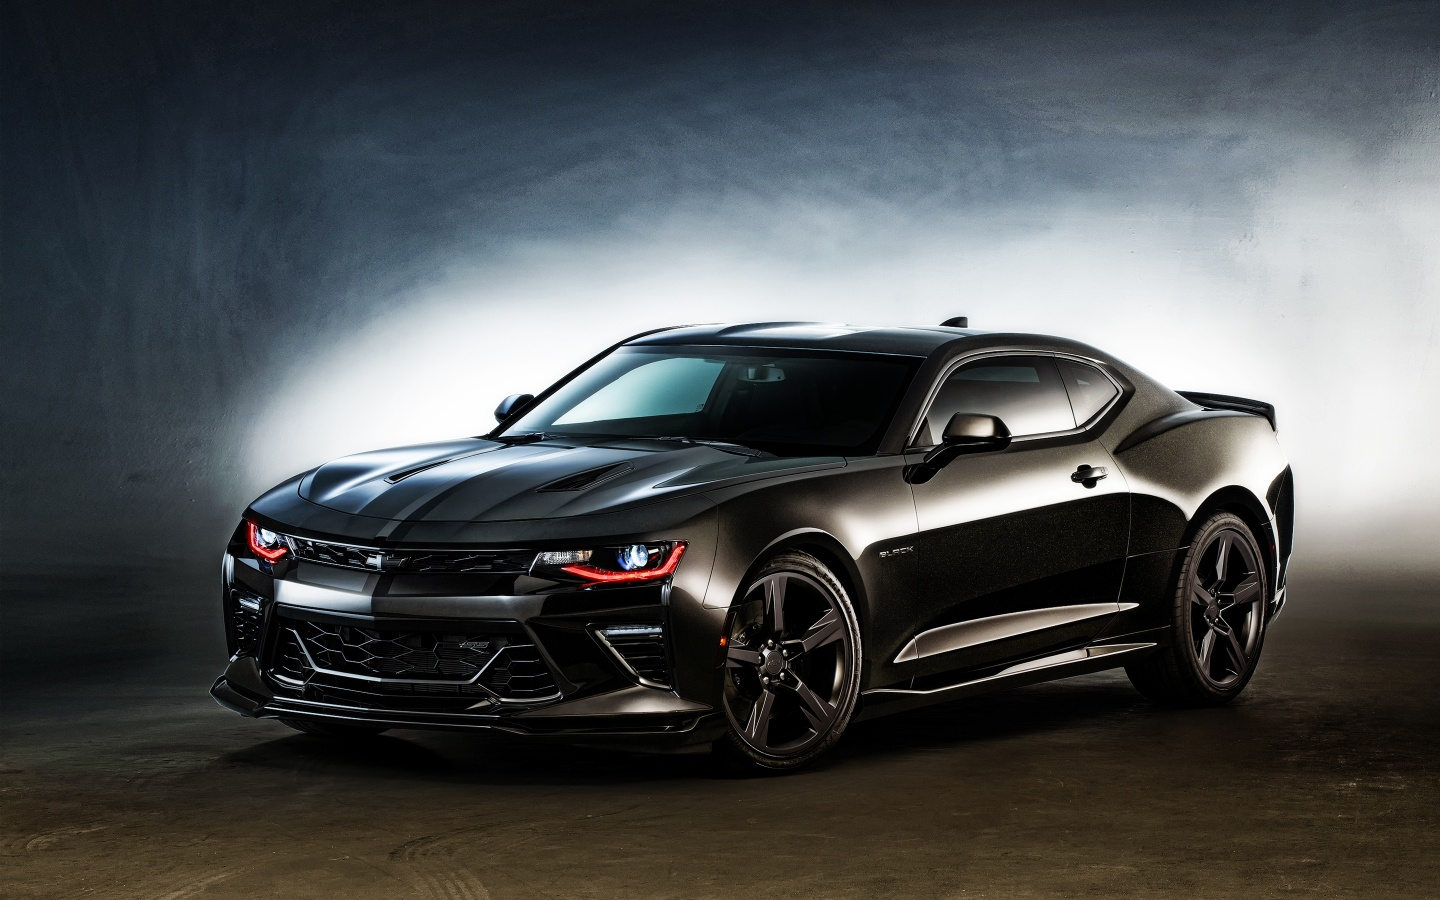 2016 Chevrolet Camaro Black Wallpaper HD Car Wallpapers 1440x900